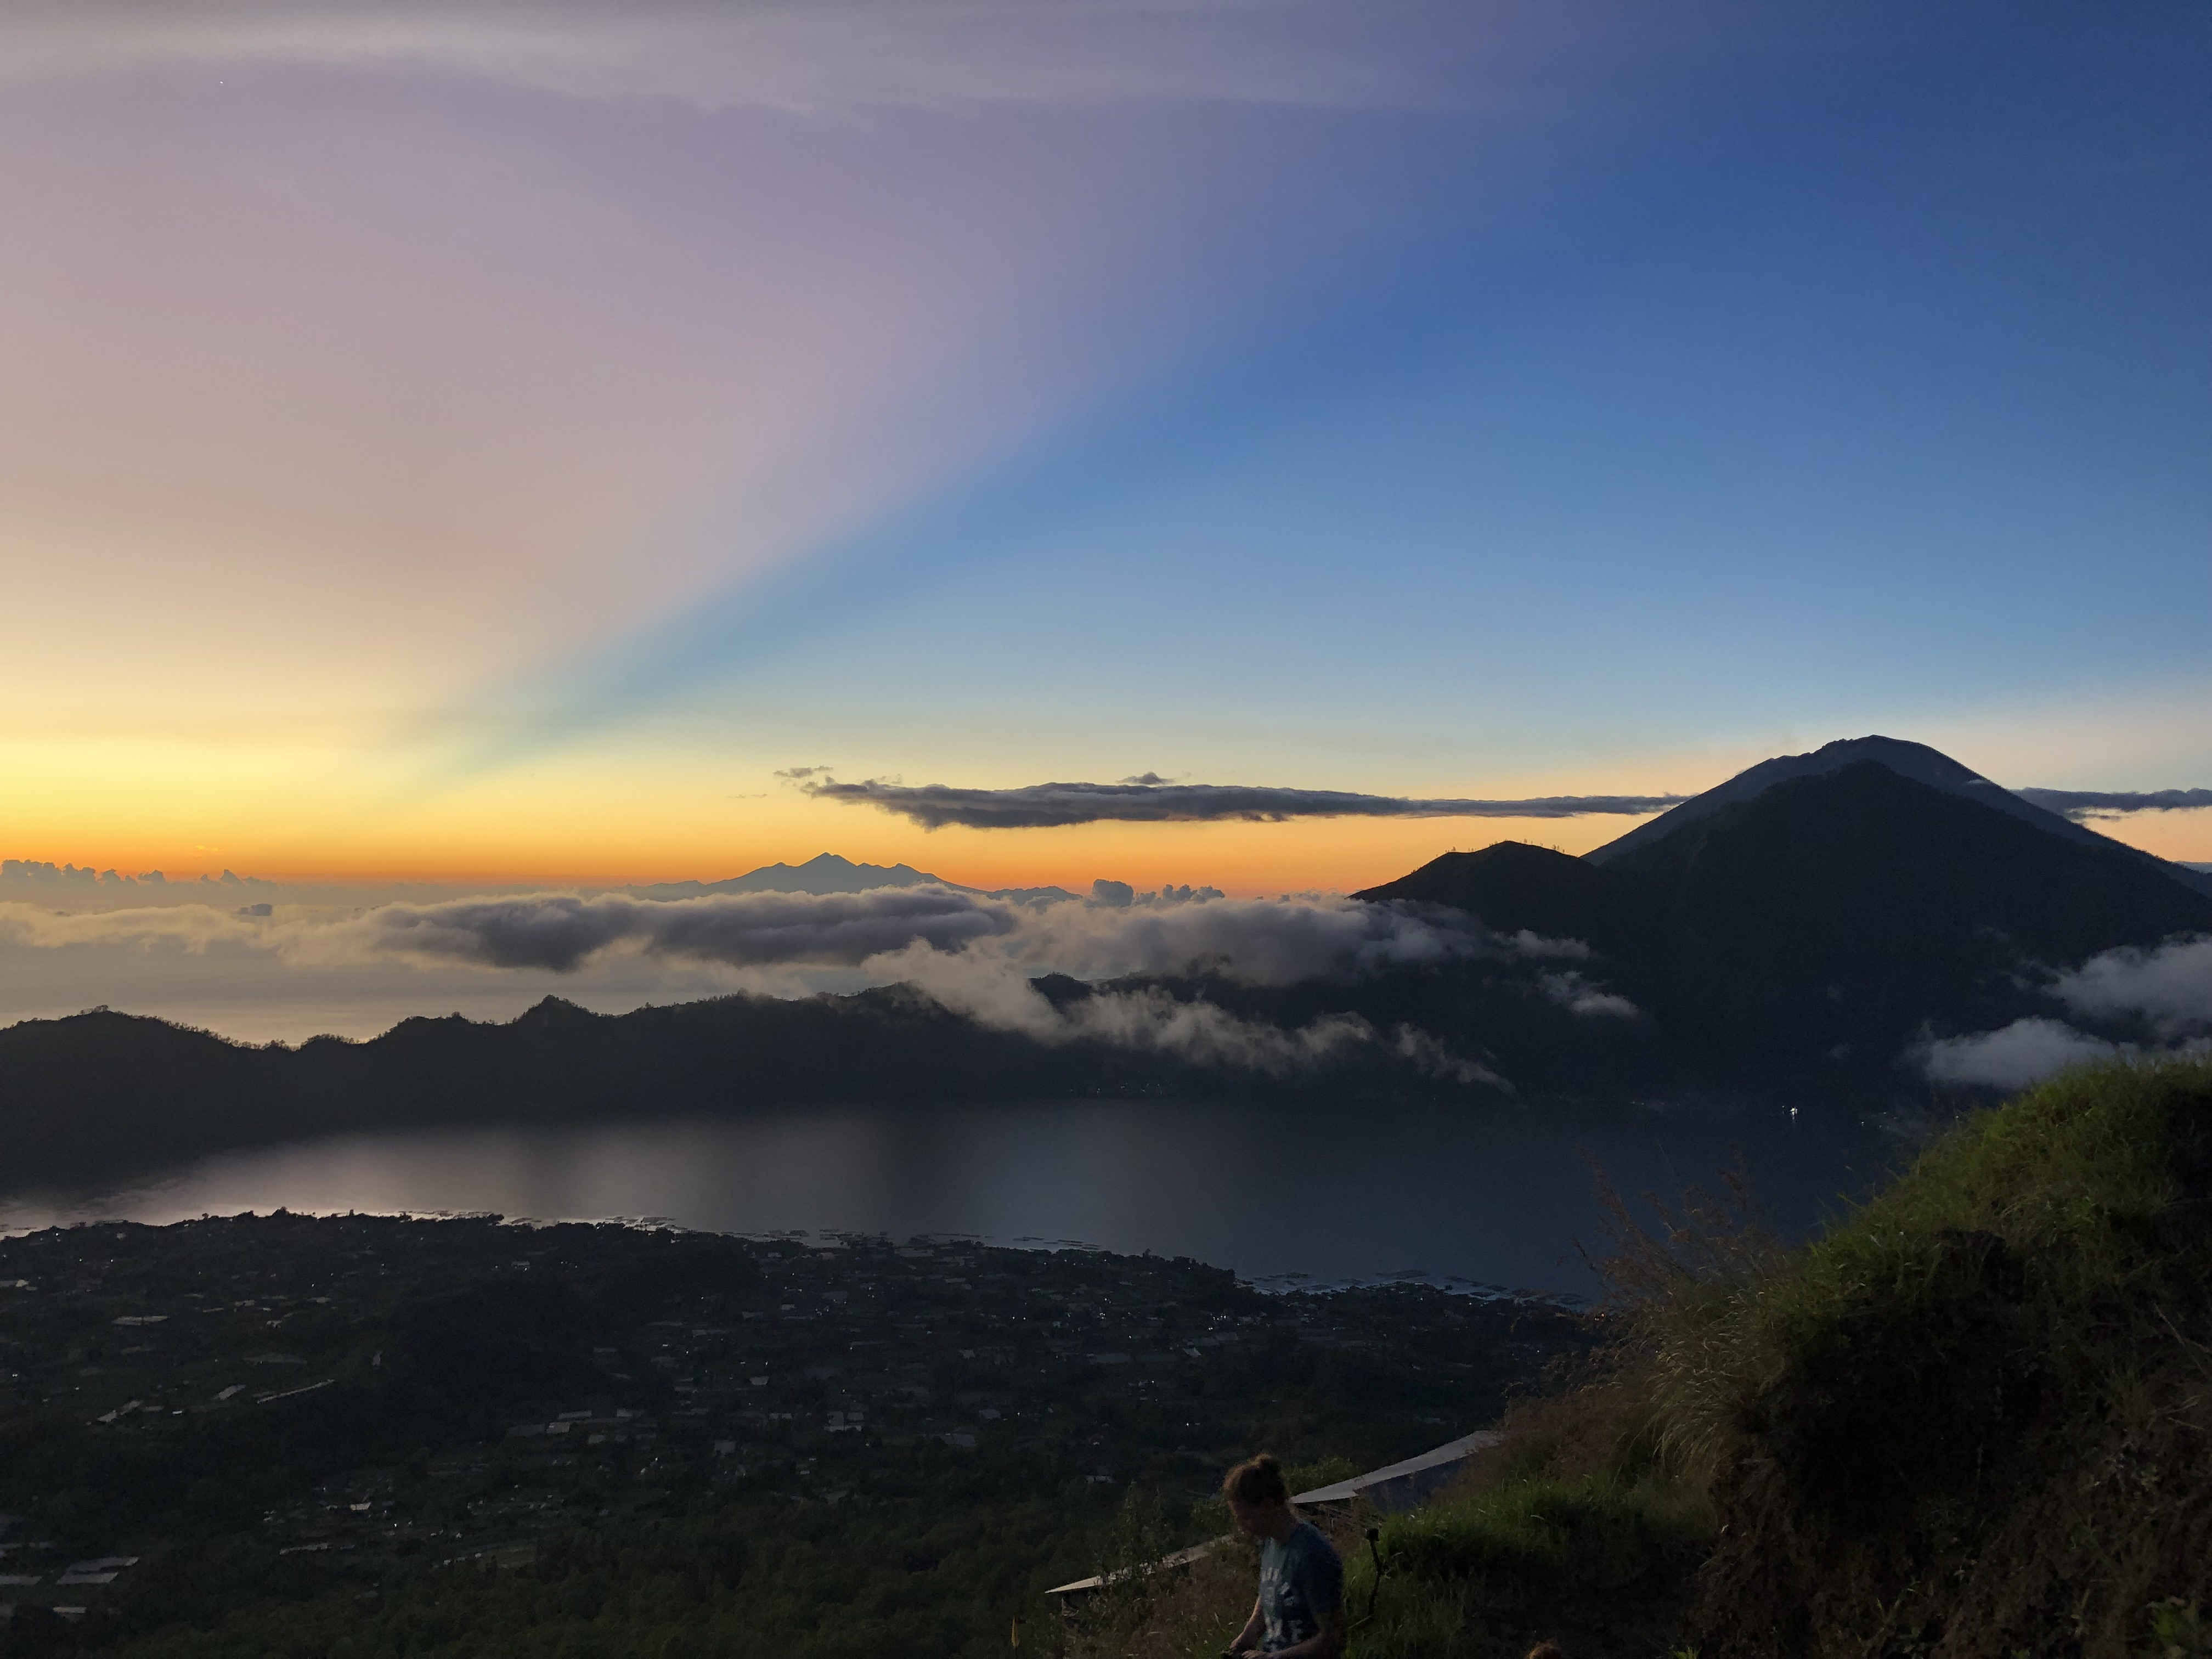 Hiking Mount Batur sunrise